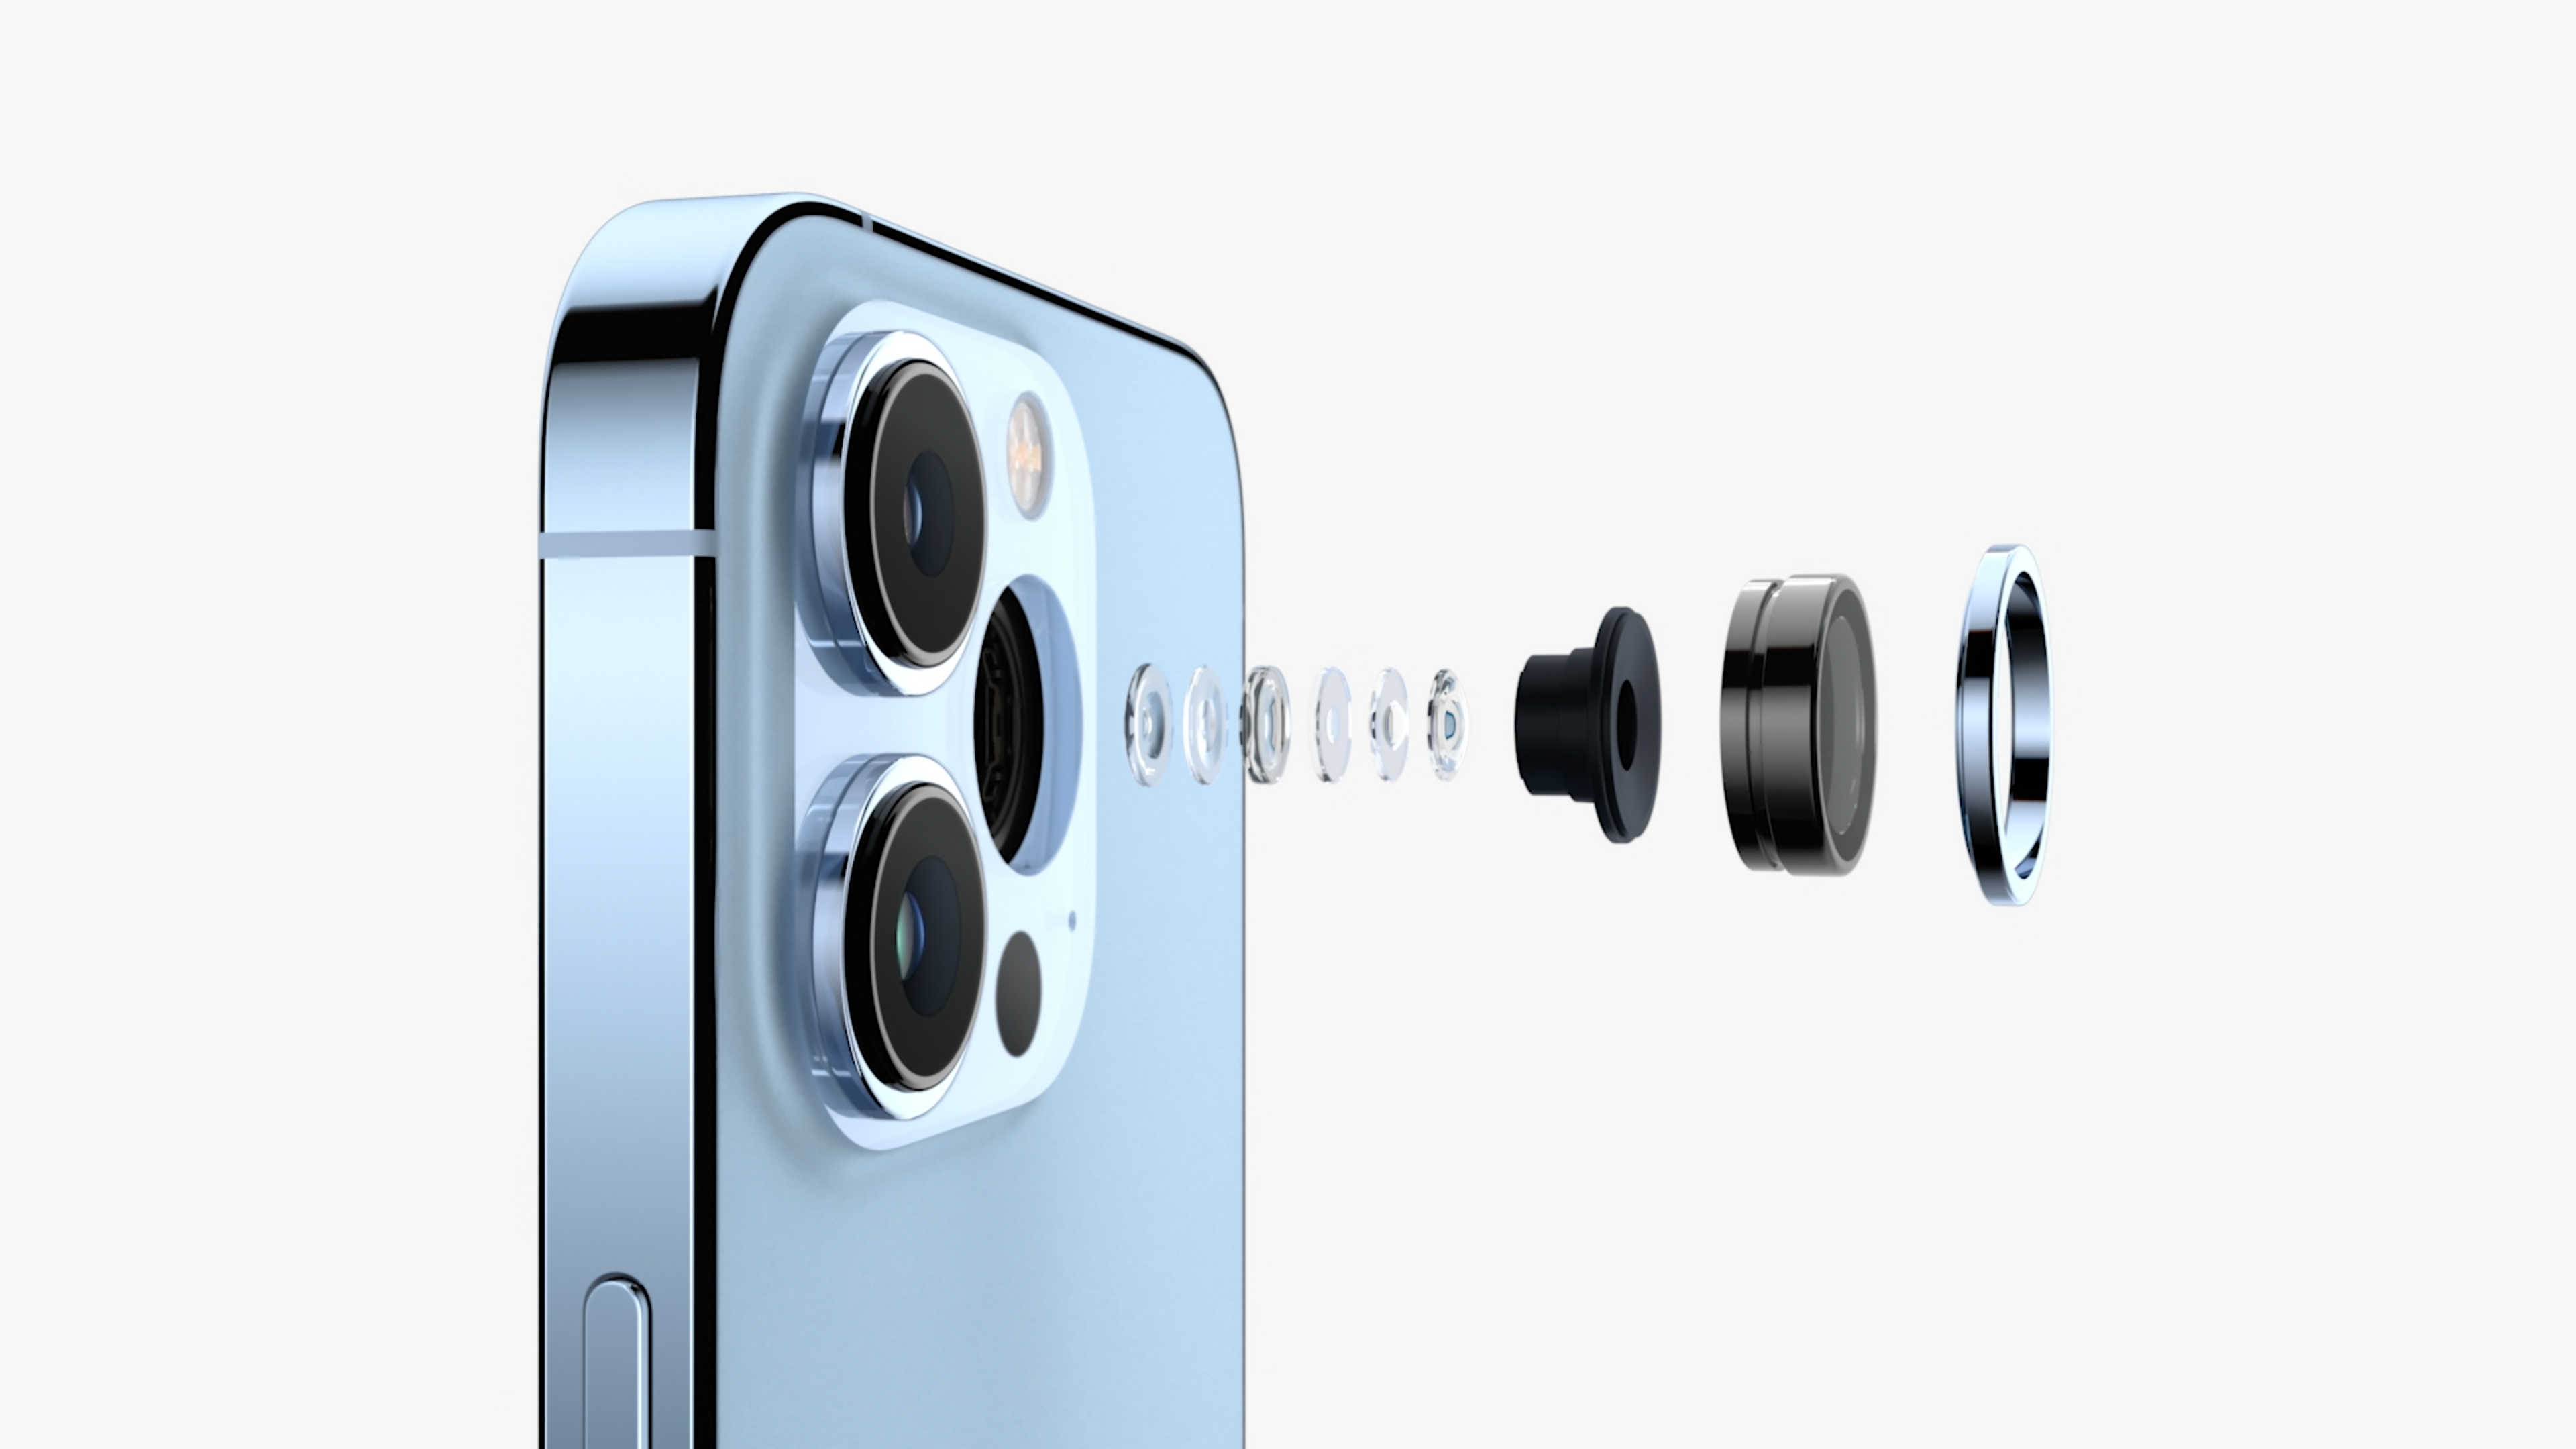 Apple Event new iPhone 13 cameras